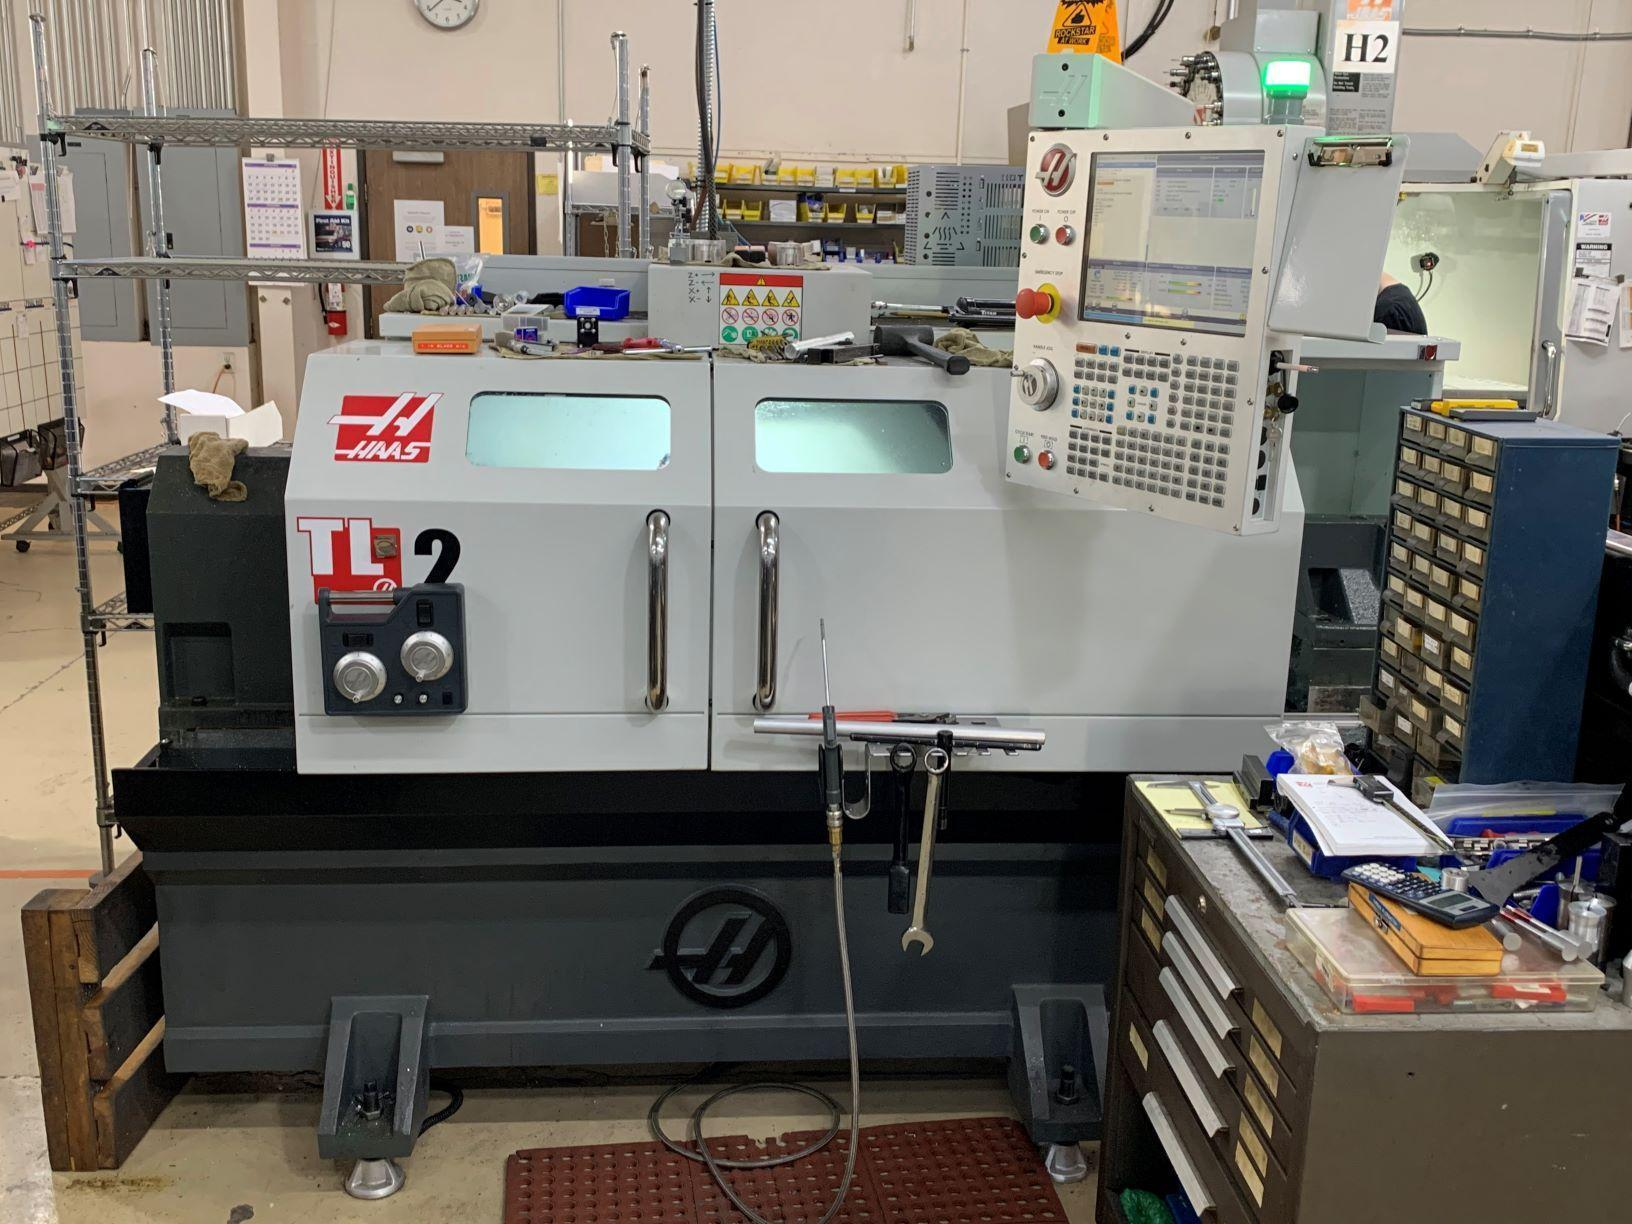 2018 Haas TL-2 CNC Lathe - Barely Used!